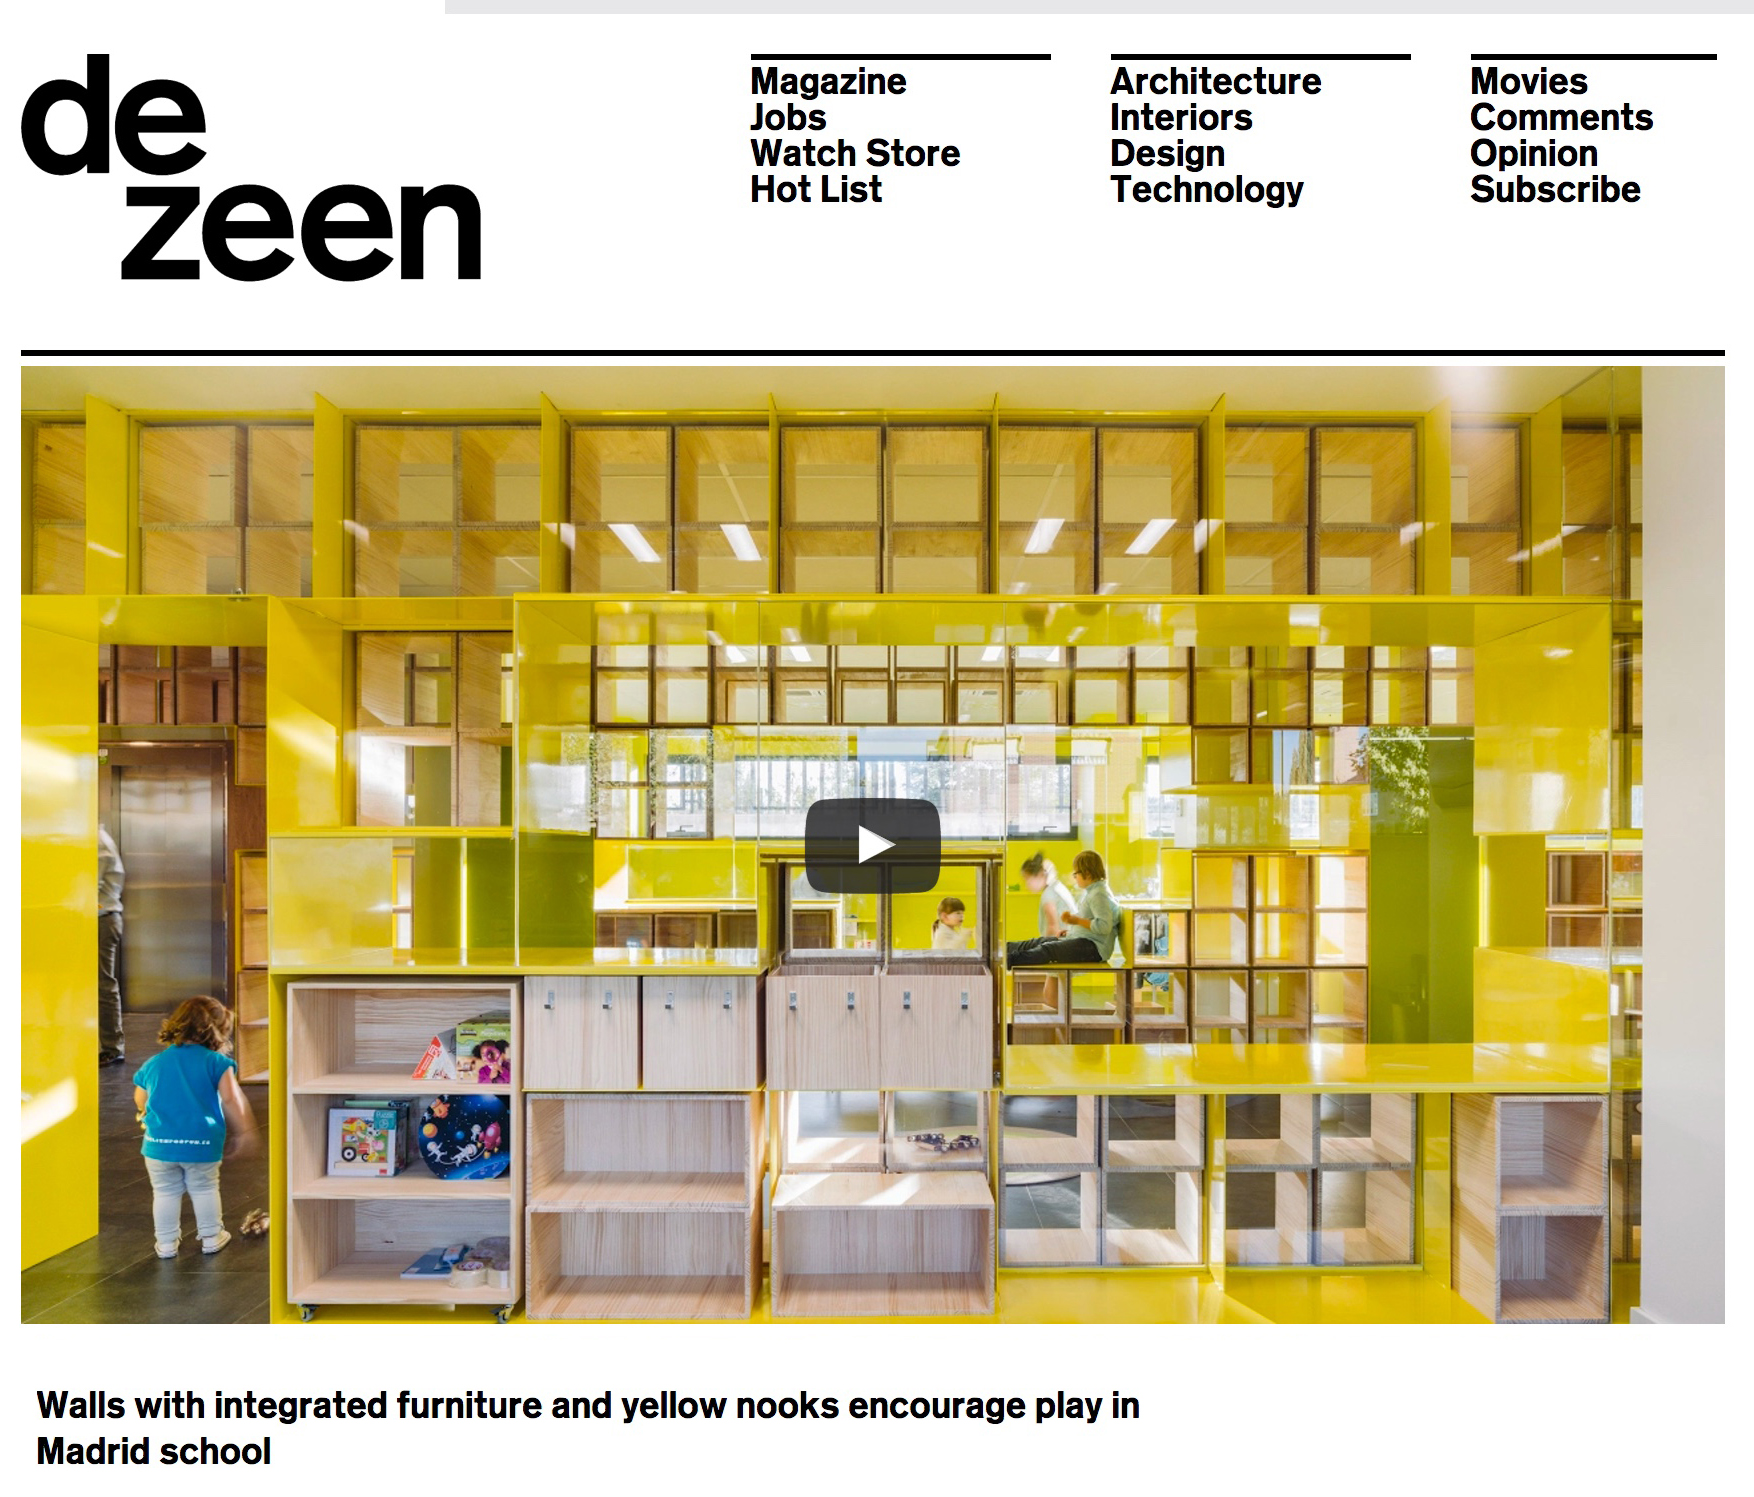 The kindergarten ¨English for fun¨ published on Dezeen